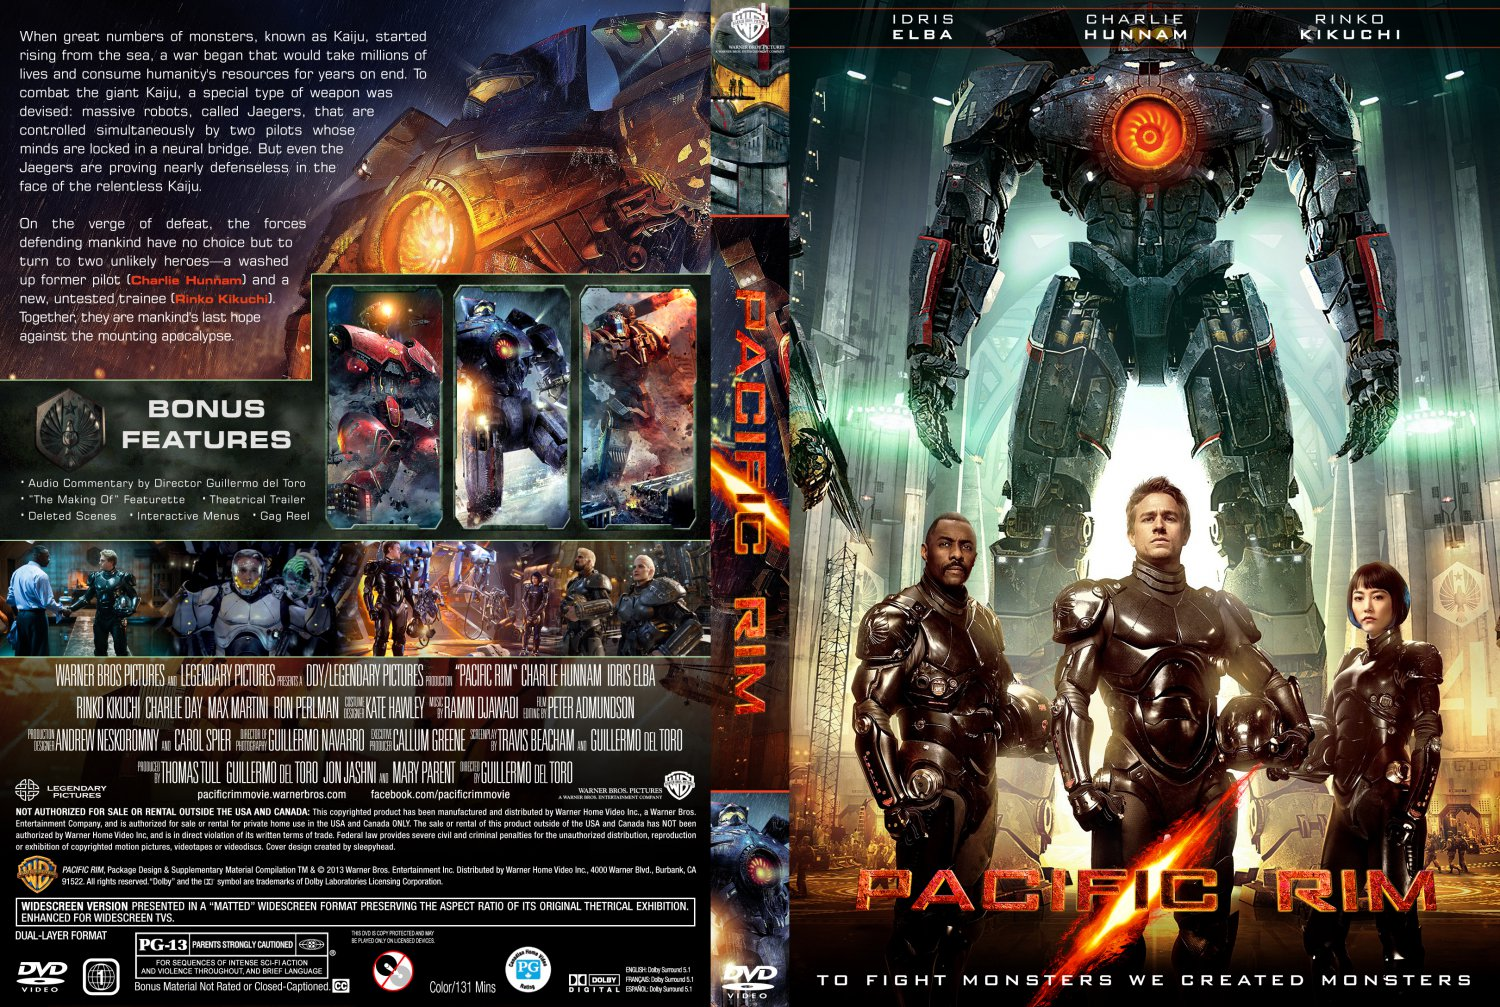 Pacific Rim - Movie DVD Custom Covers - Pacific Rim-front1 ... Pacific Rim Blu Ray Cover